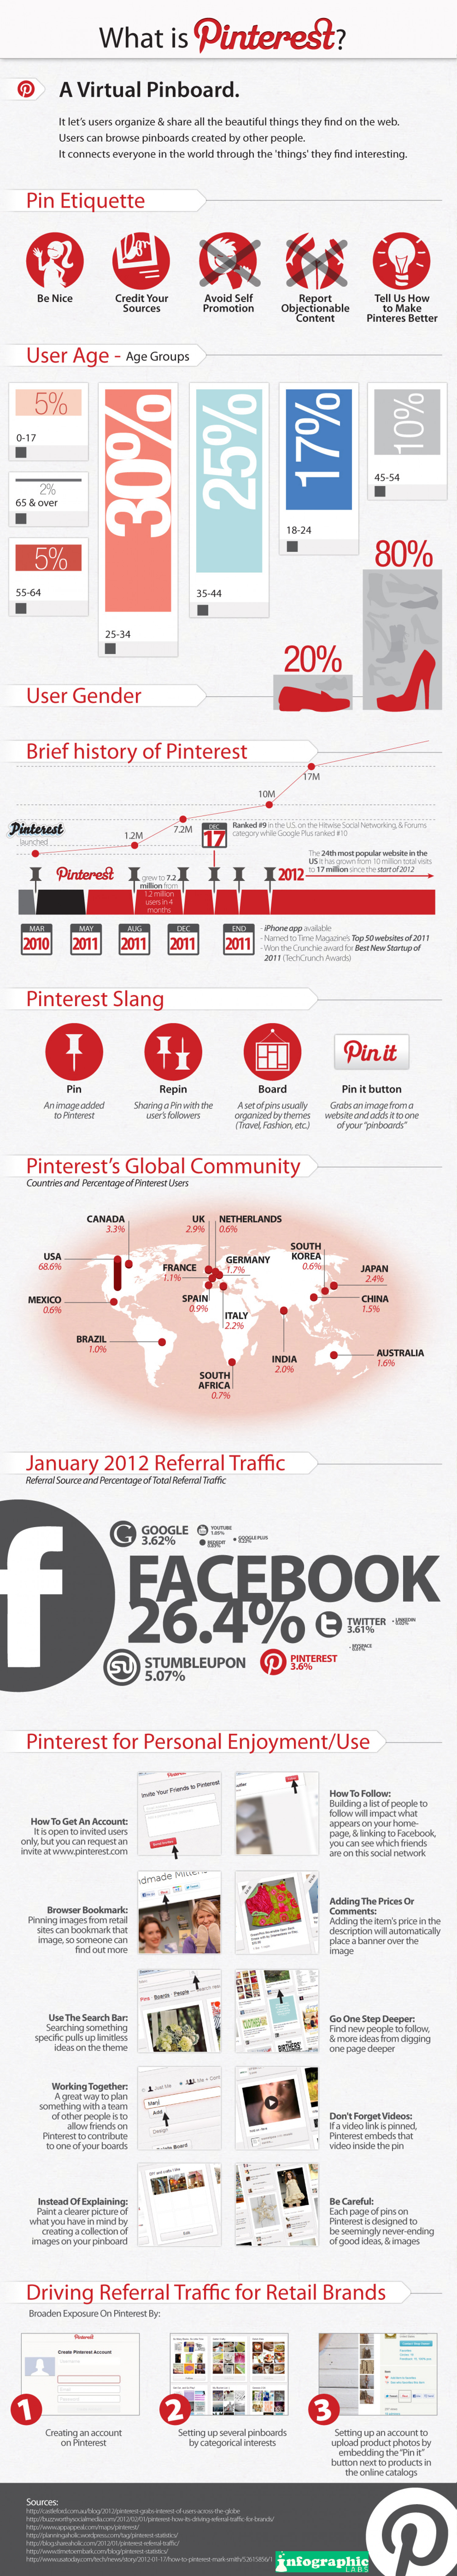 What is Pinterest? Infographic